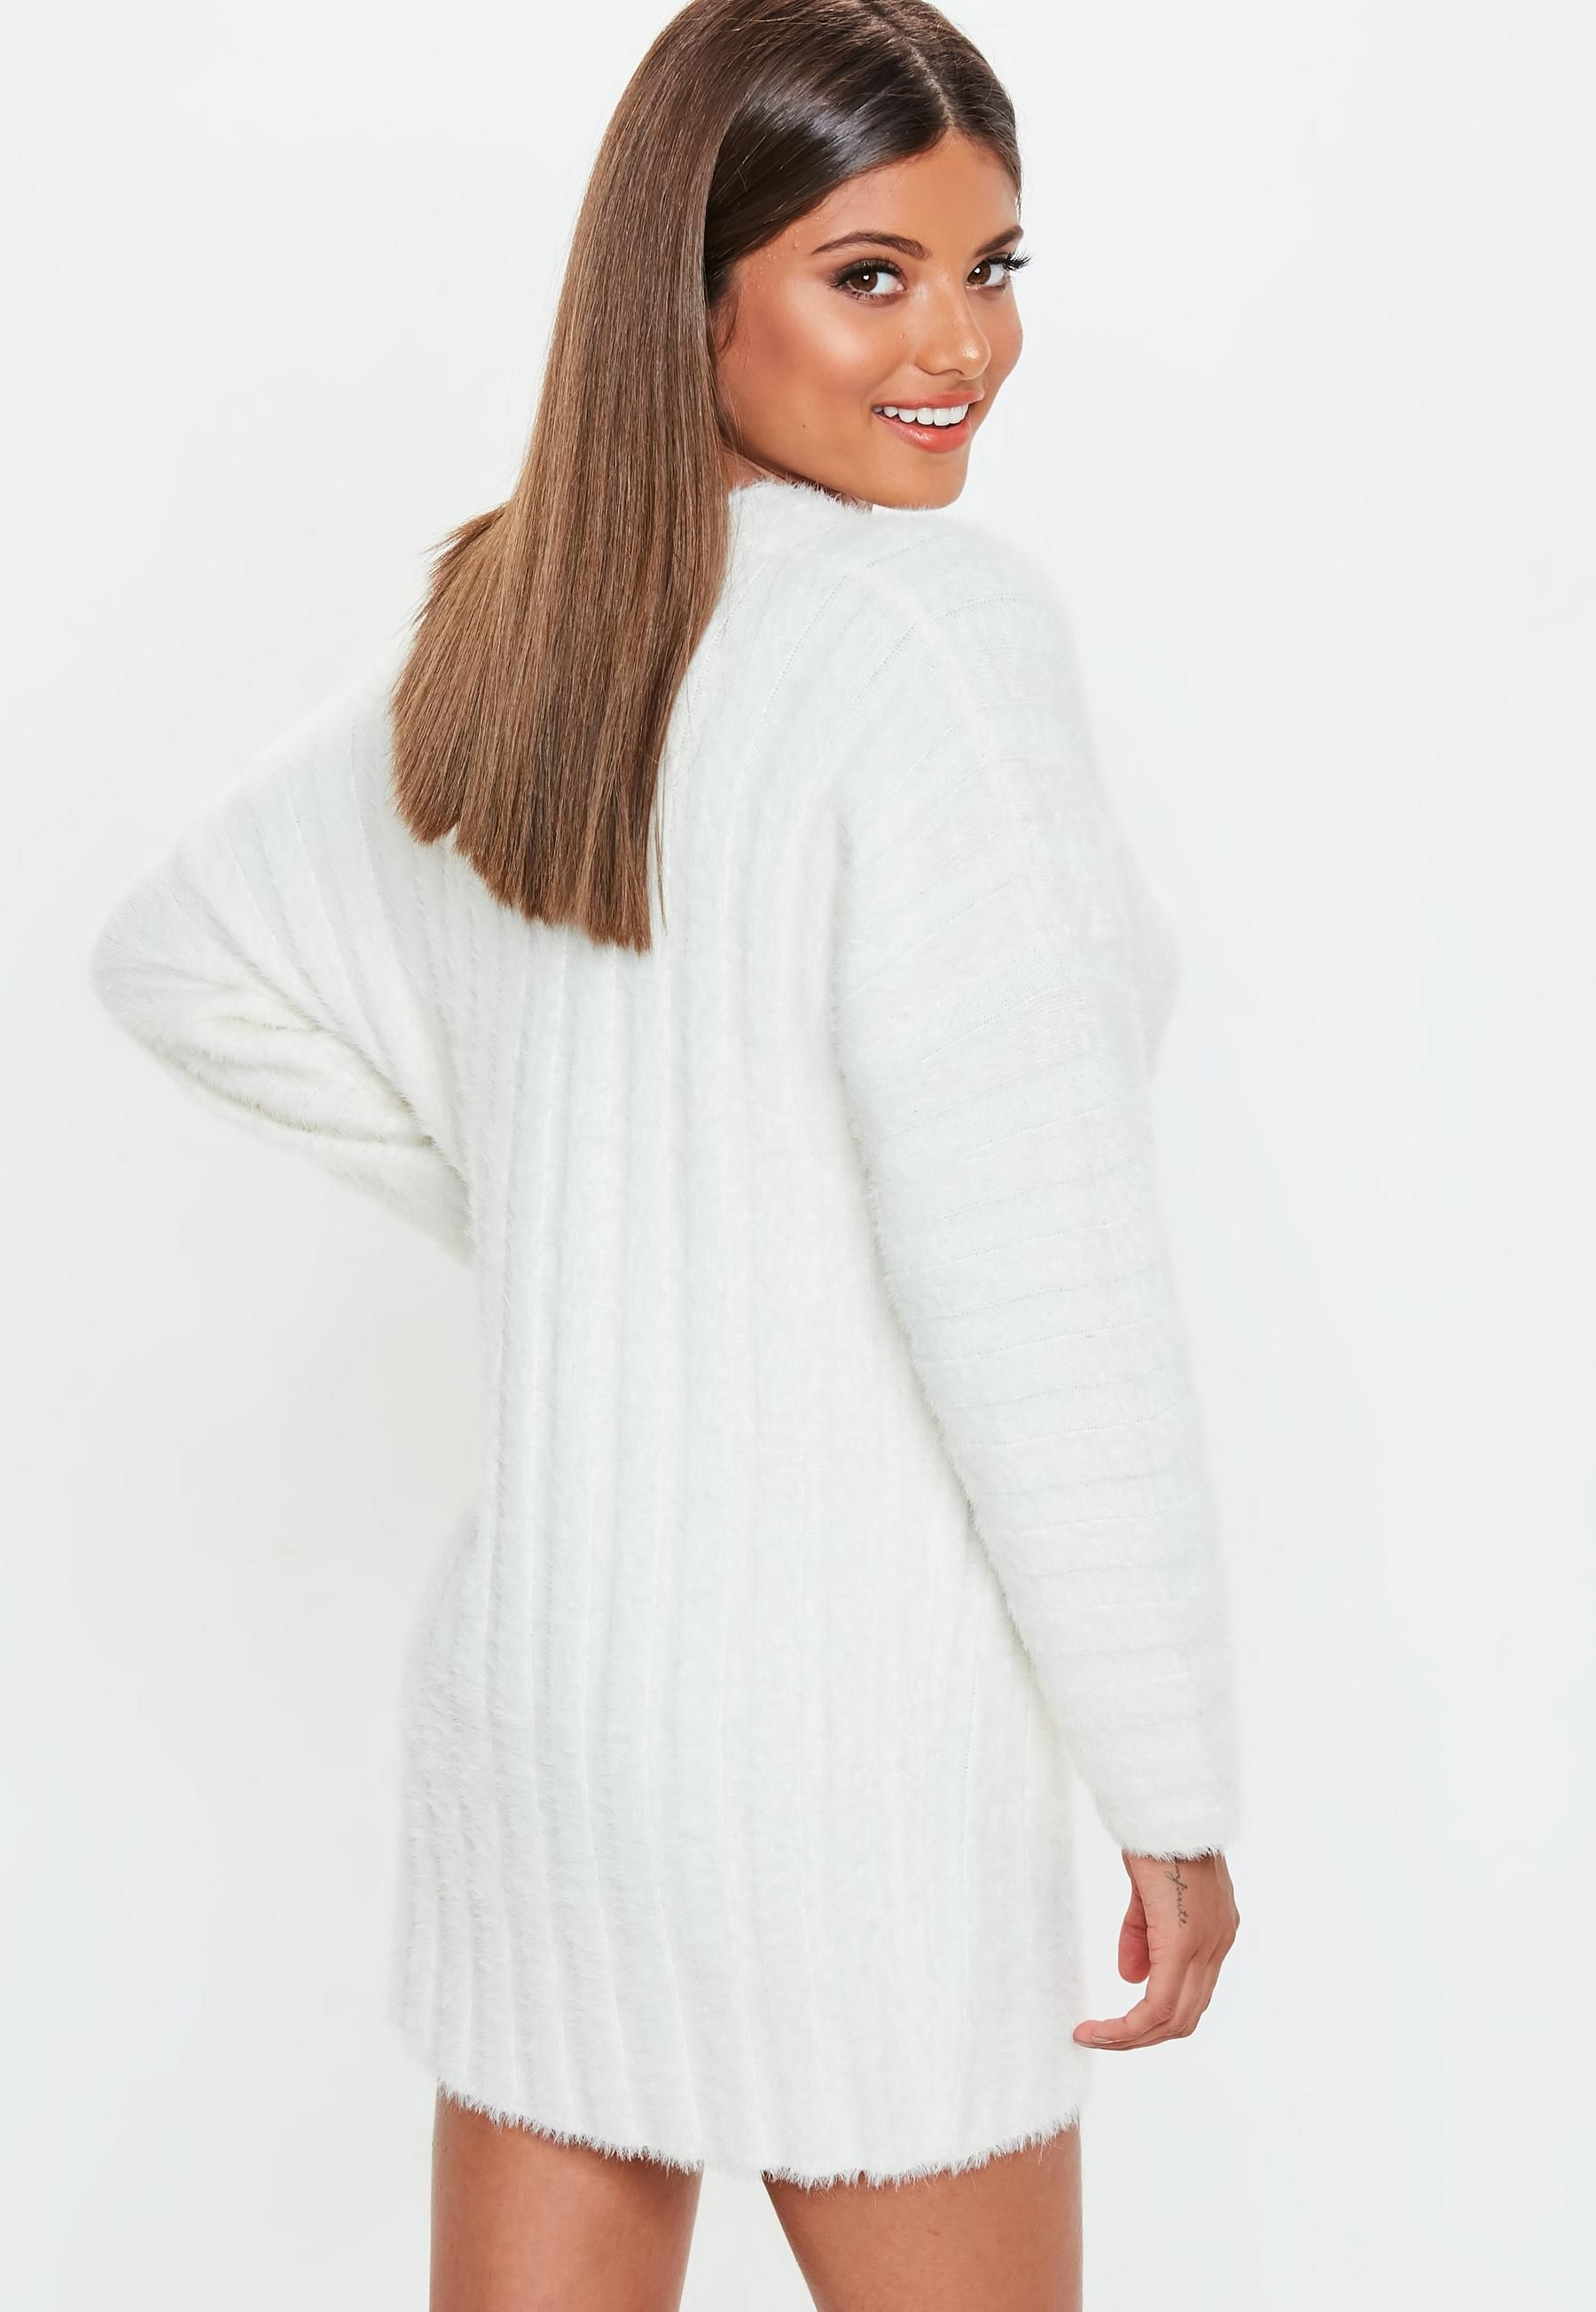 eeac993b47f22 Missguided - White Fluffy Ribbed Knitted Jumper Dress in 2019 ...